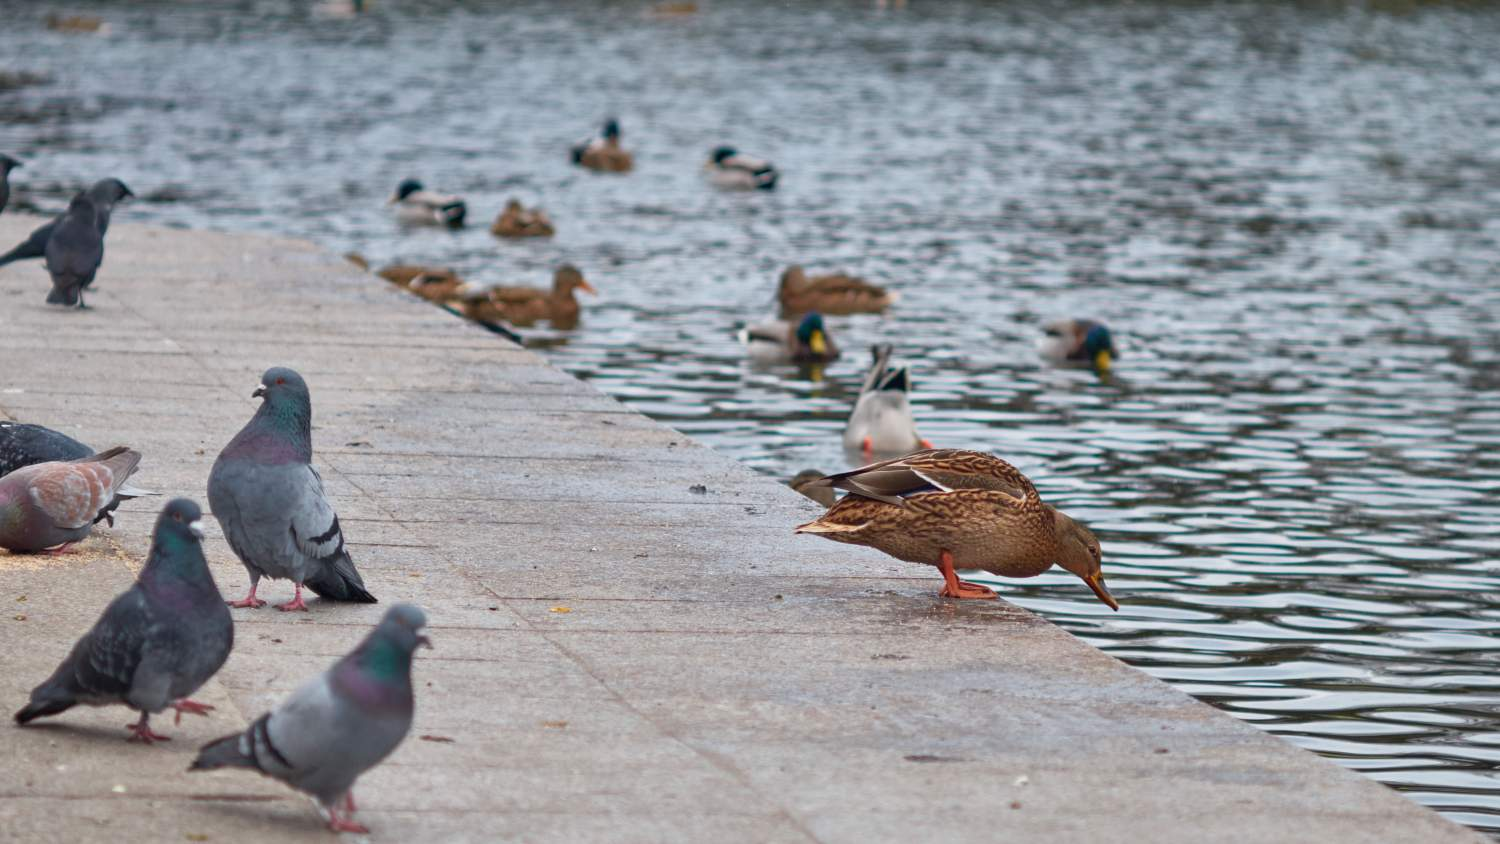 Pigeons and ducks at a river bank